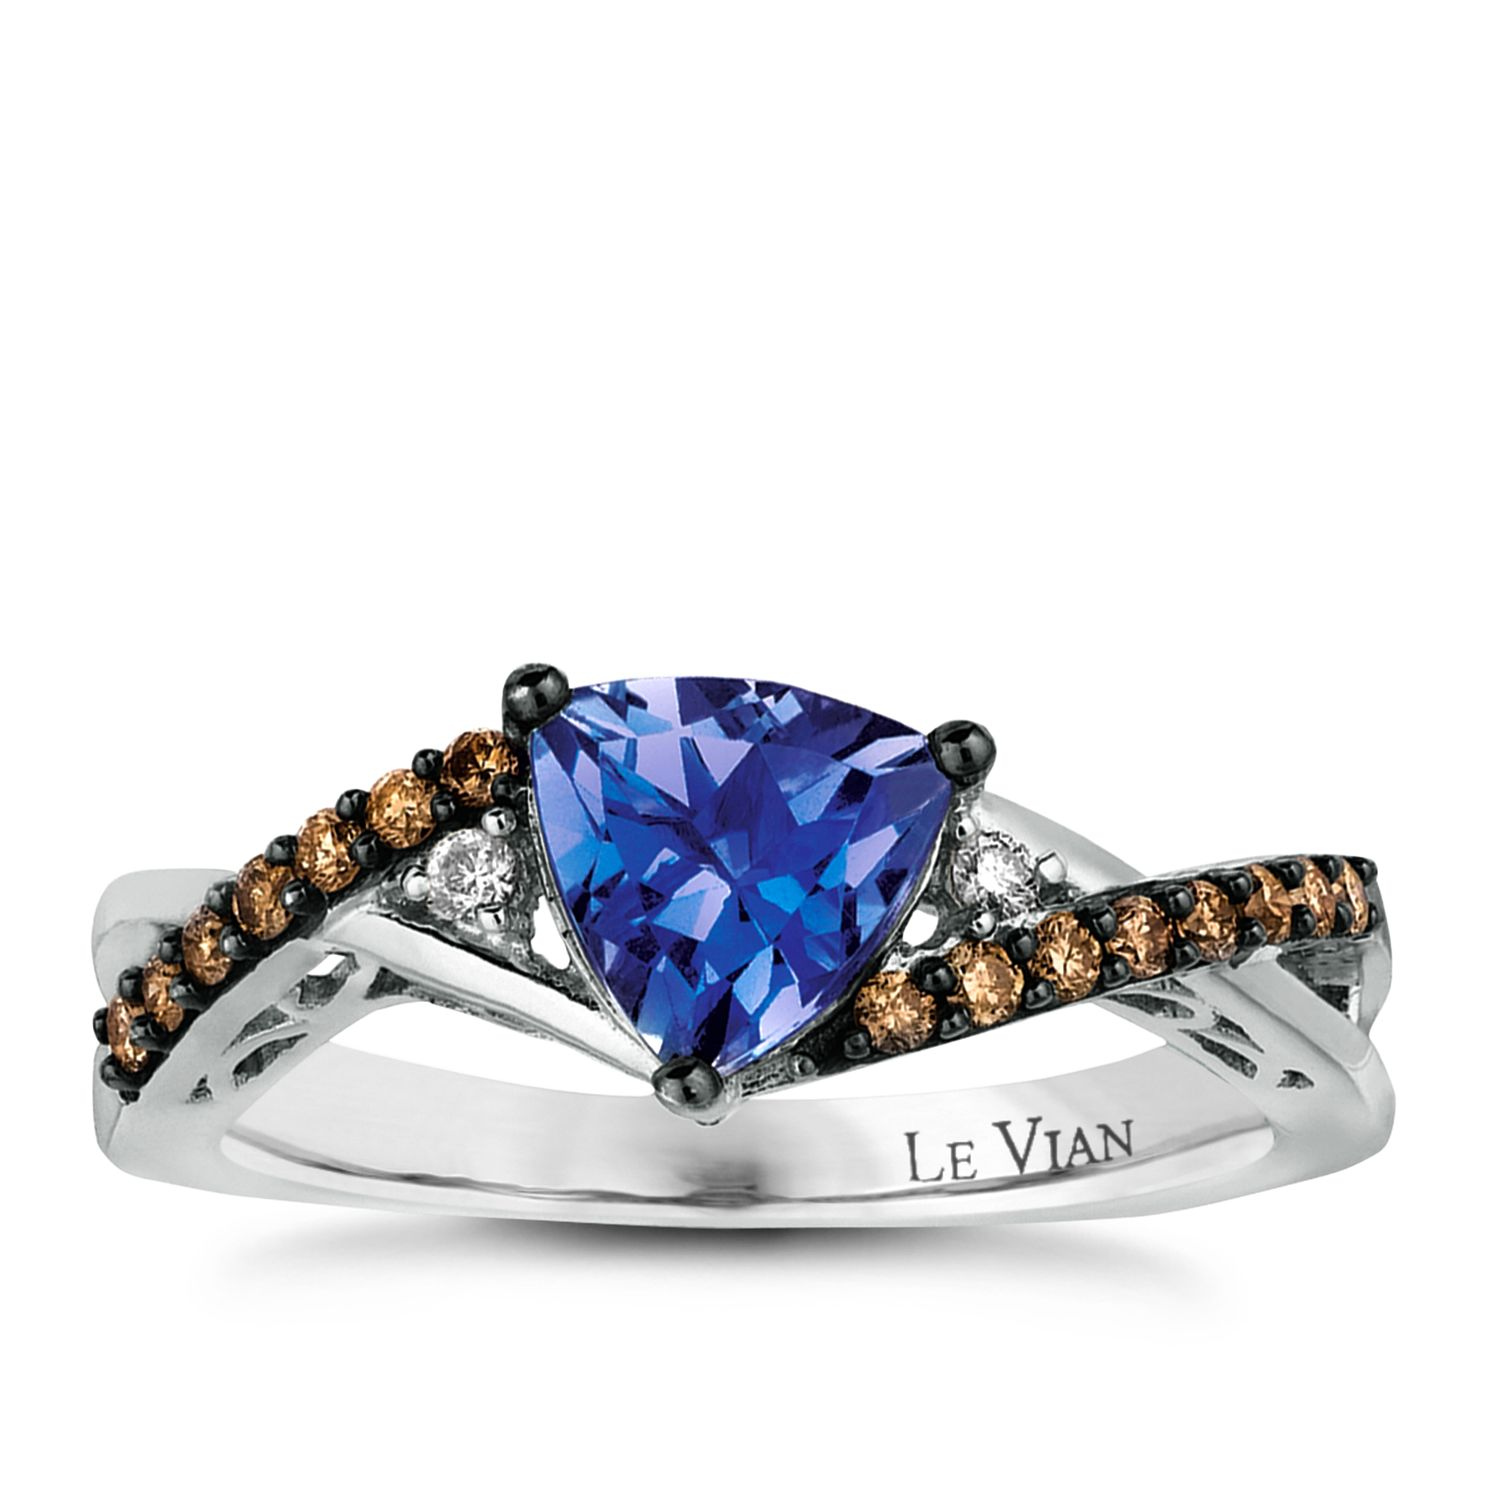 Le Vian 14ct Vanilla Gold Tanzanite & Diamond Ring - Product number 2365588